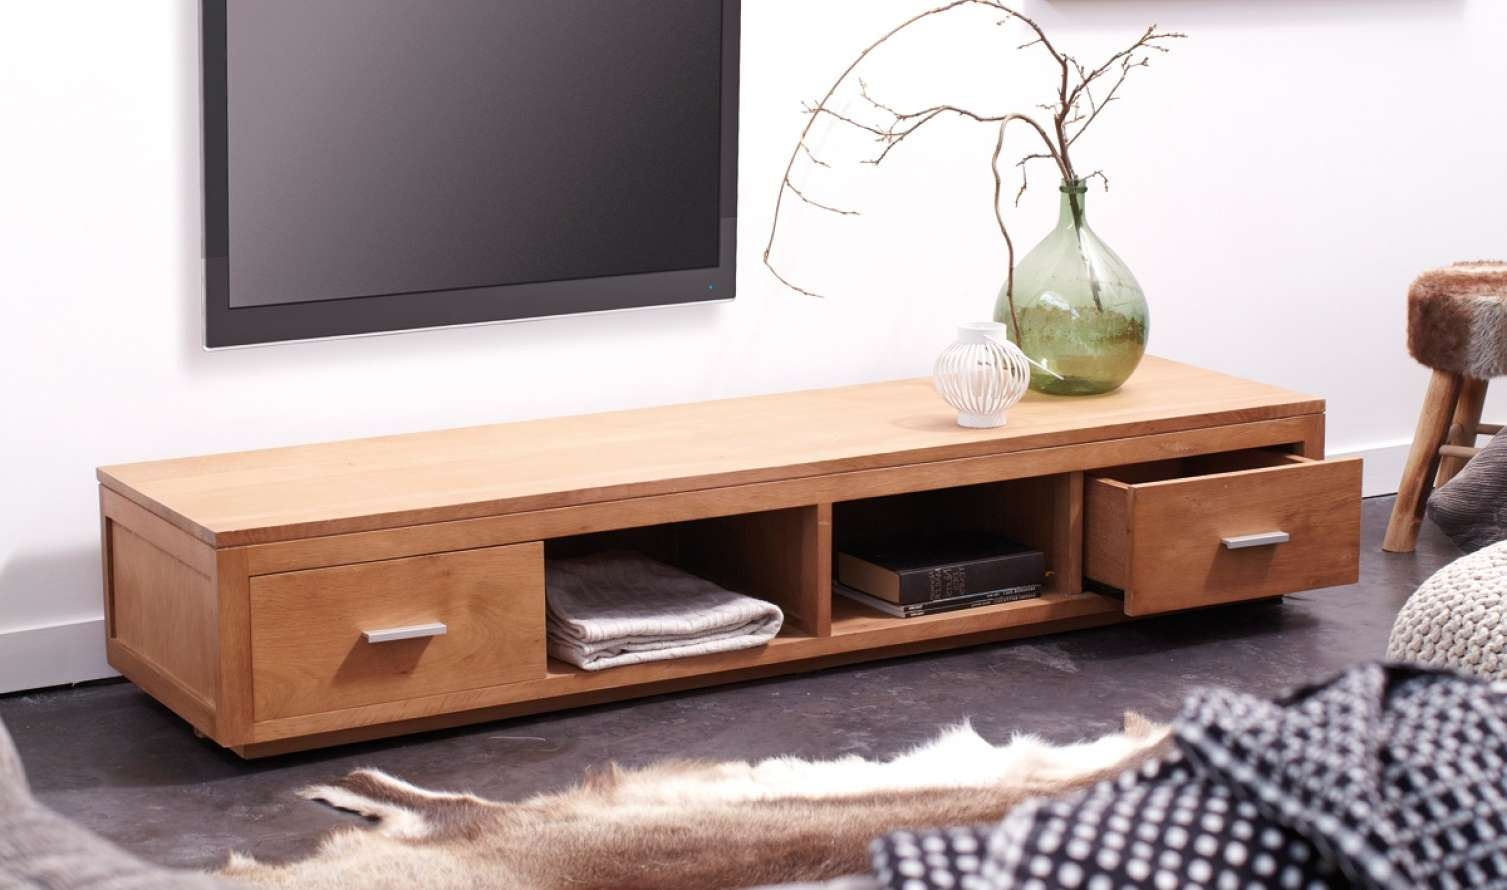 Tv : Horrible Oak Tv Cabinet With Fireplace Delight Oak Tv Within Harveys Wooden Tv Stands (View 10 of 15)